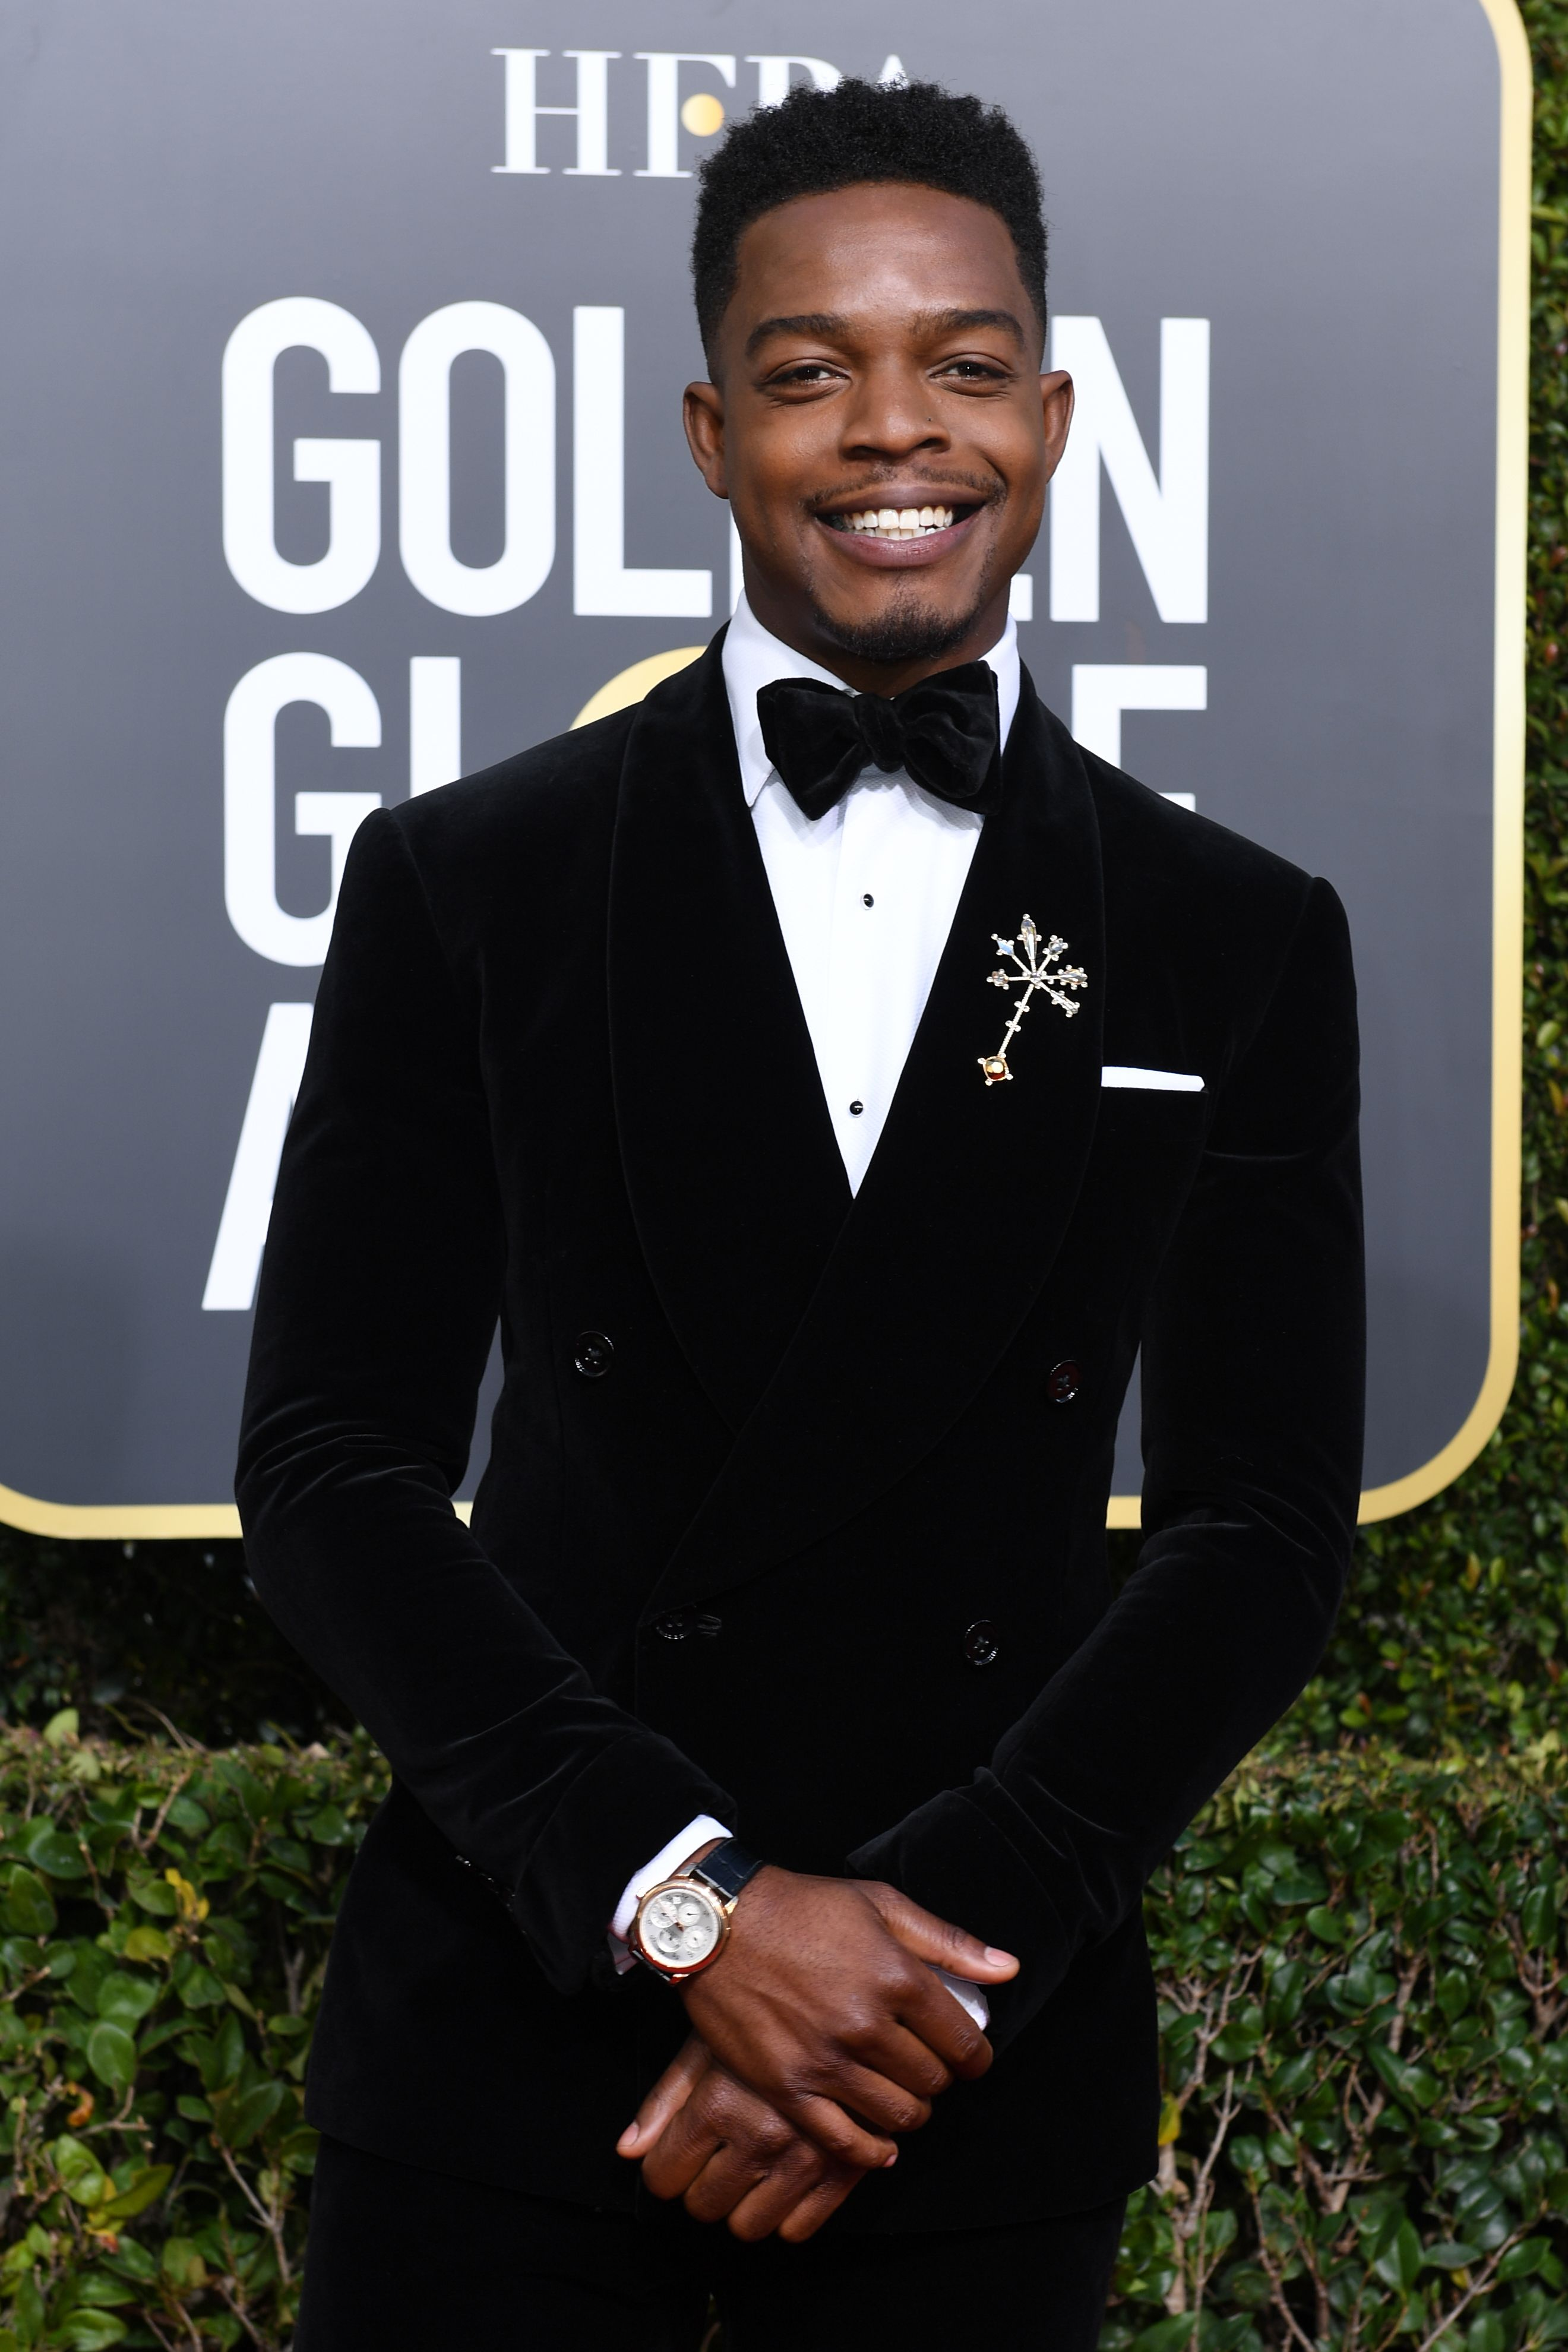 Golden Globe 2019 red carpet